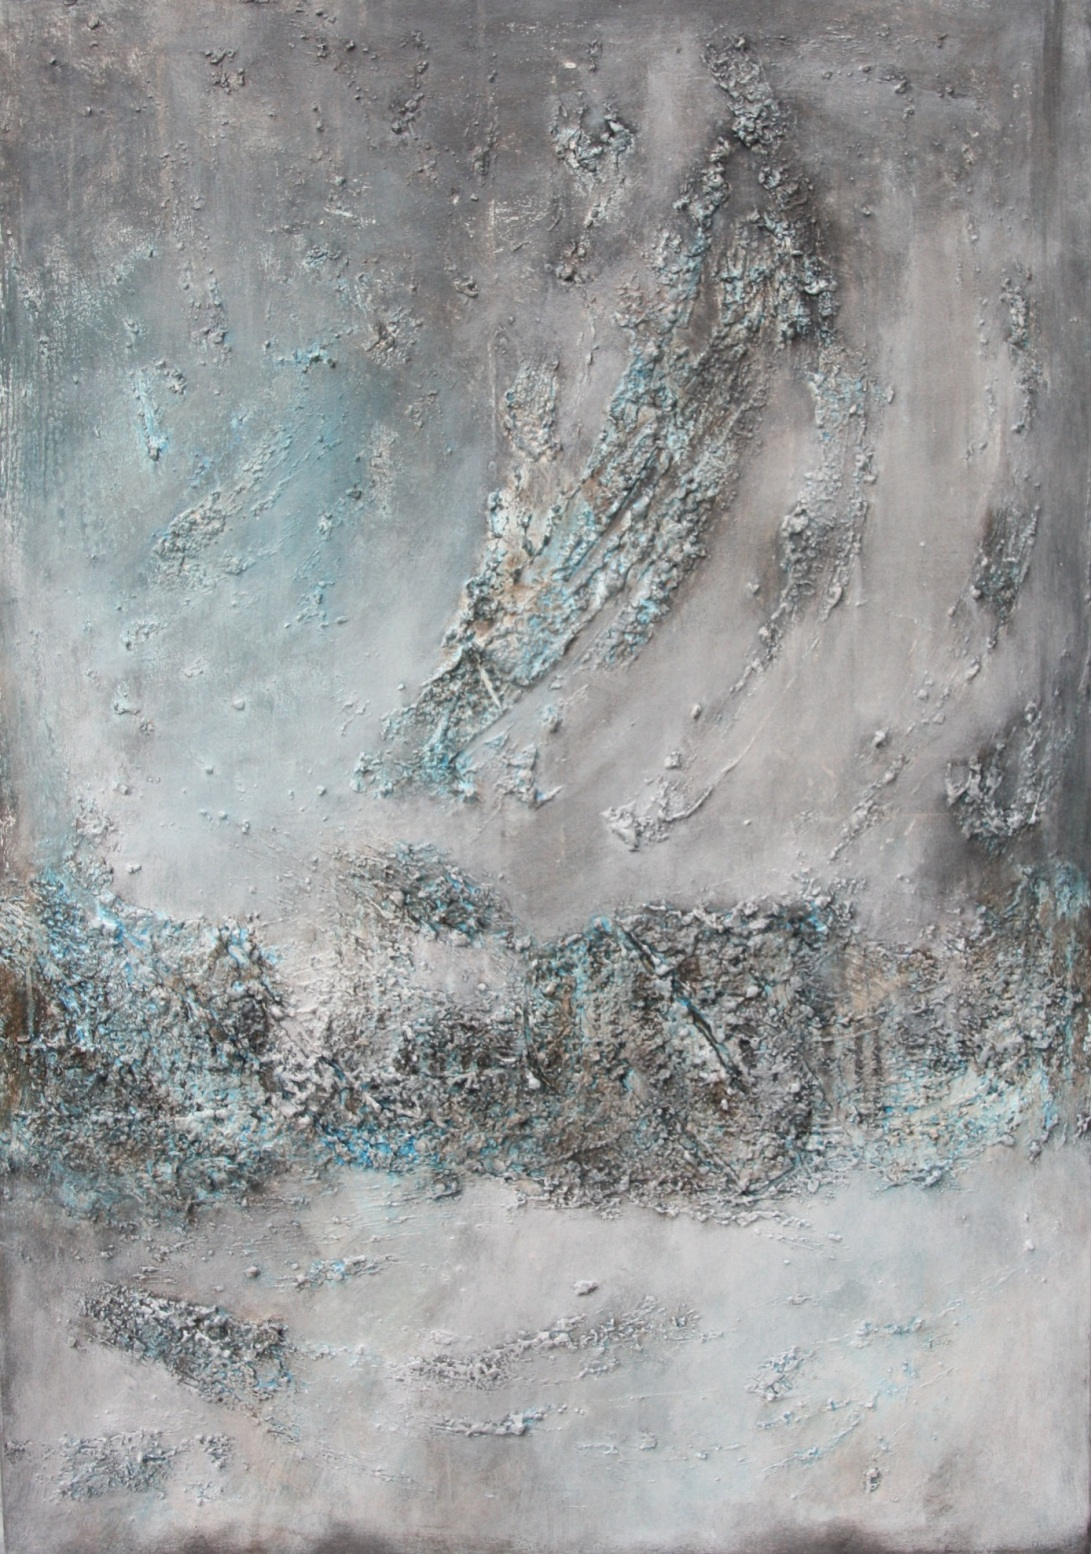 Textured abstract painting in grey and blue